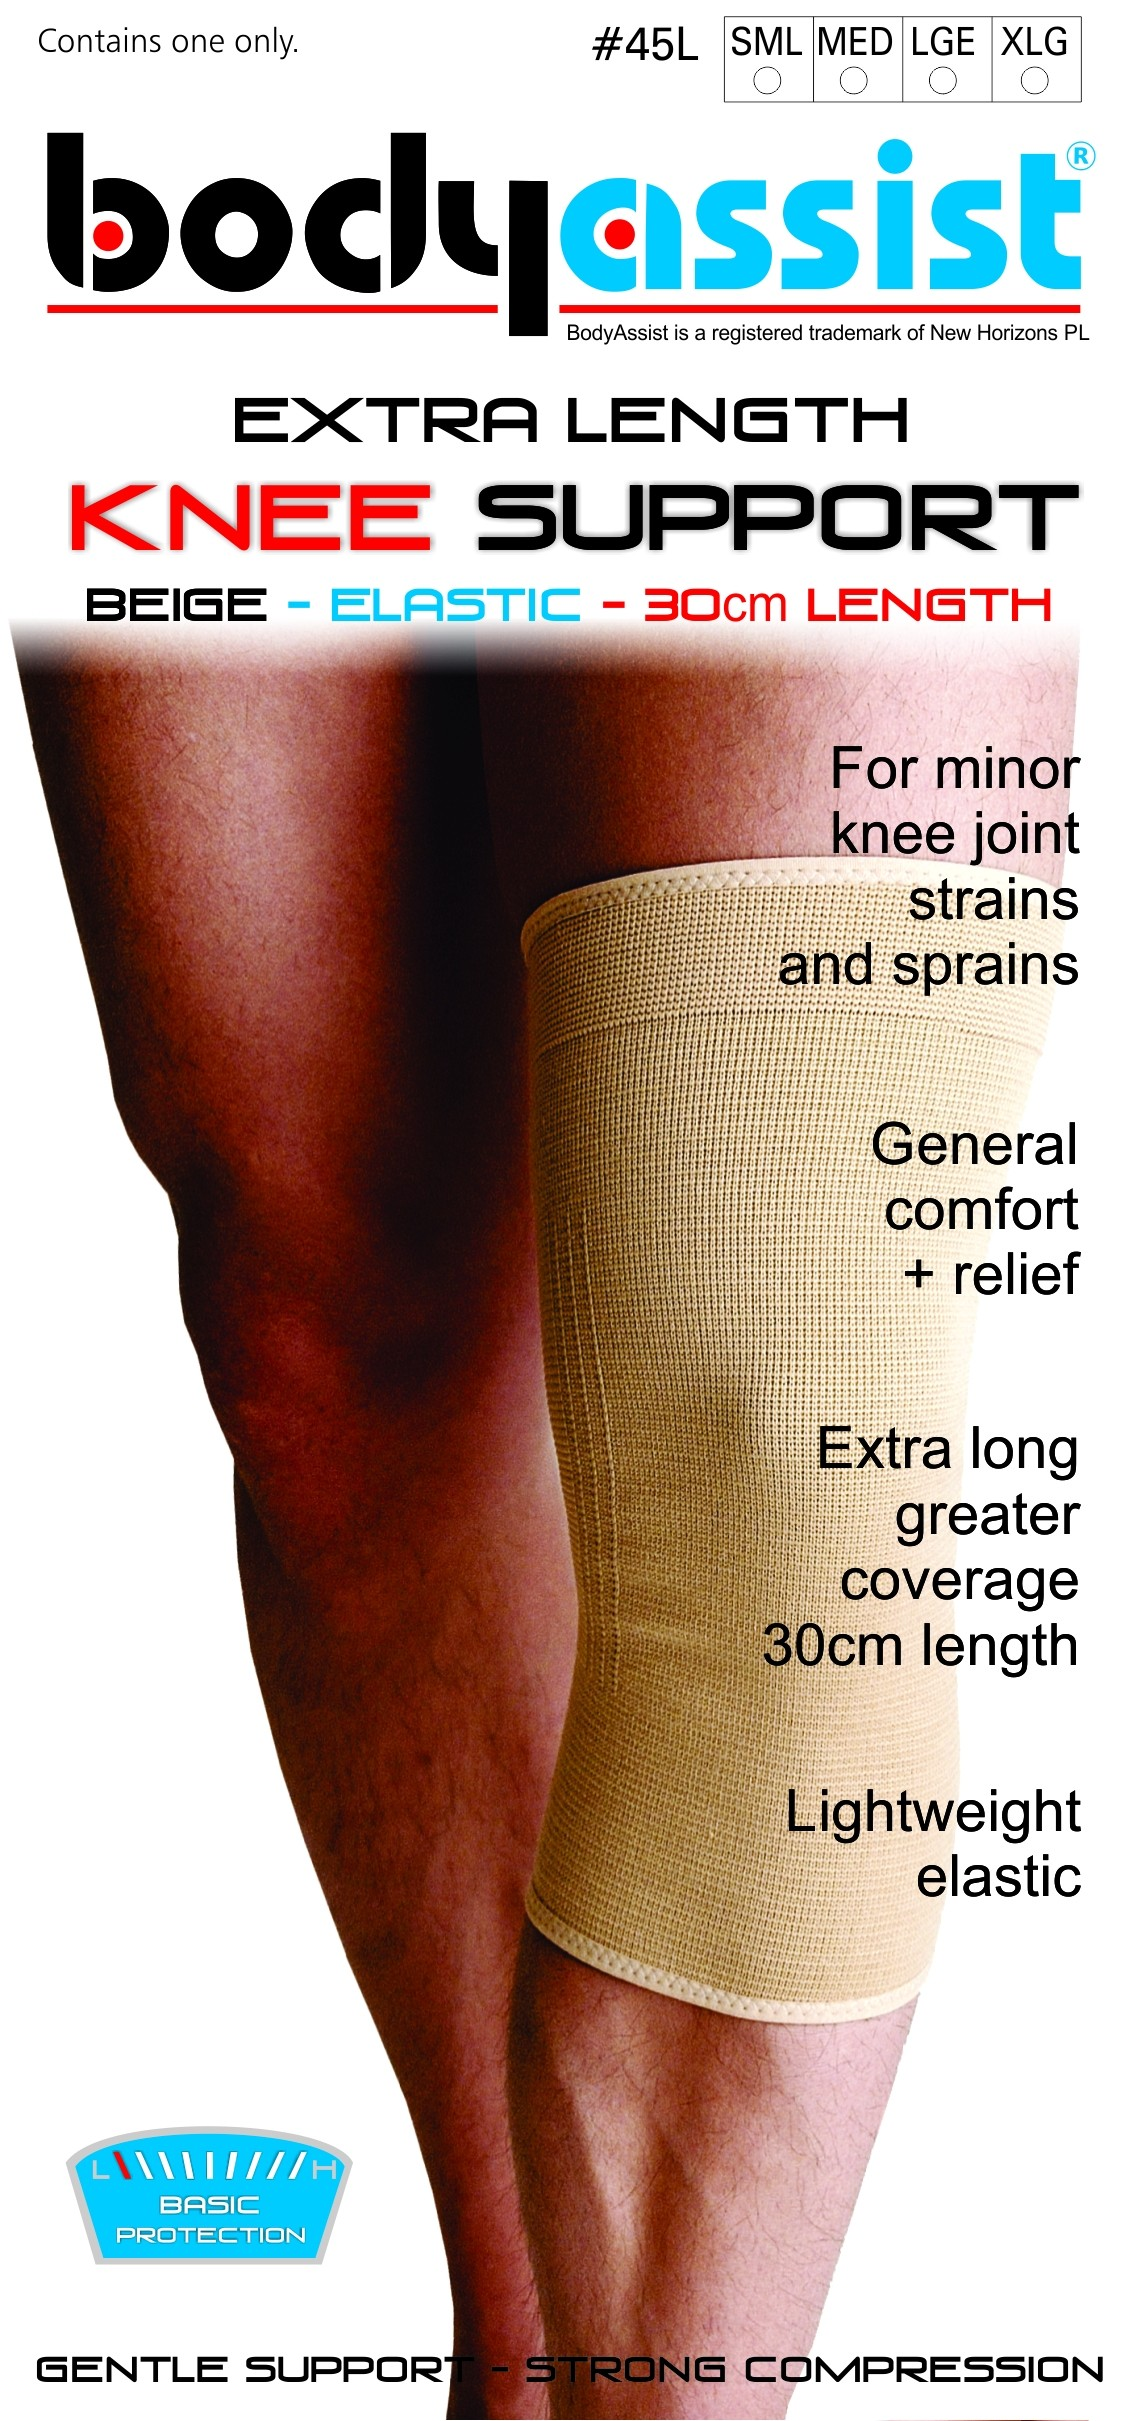 Bodyassist Extra Length Elastic Knee